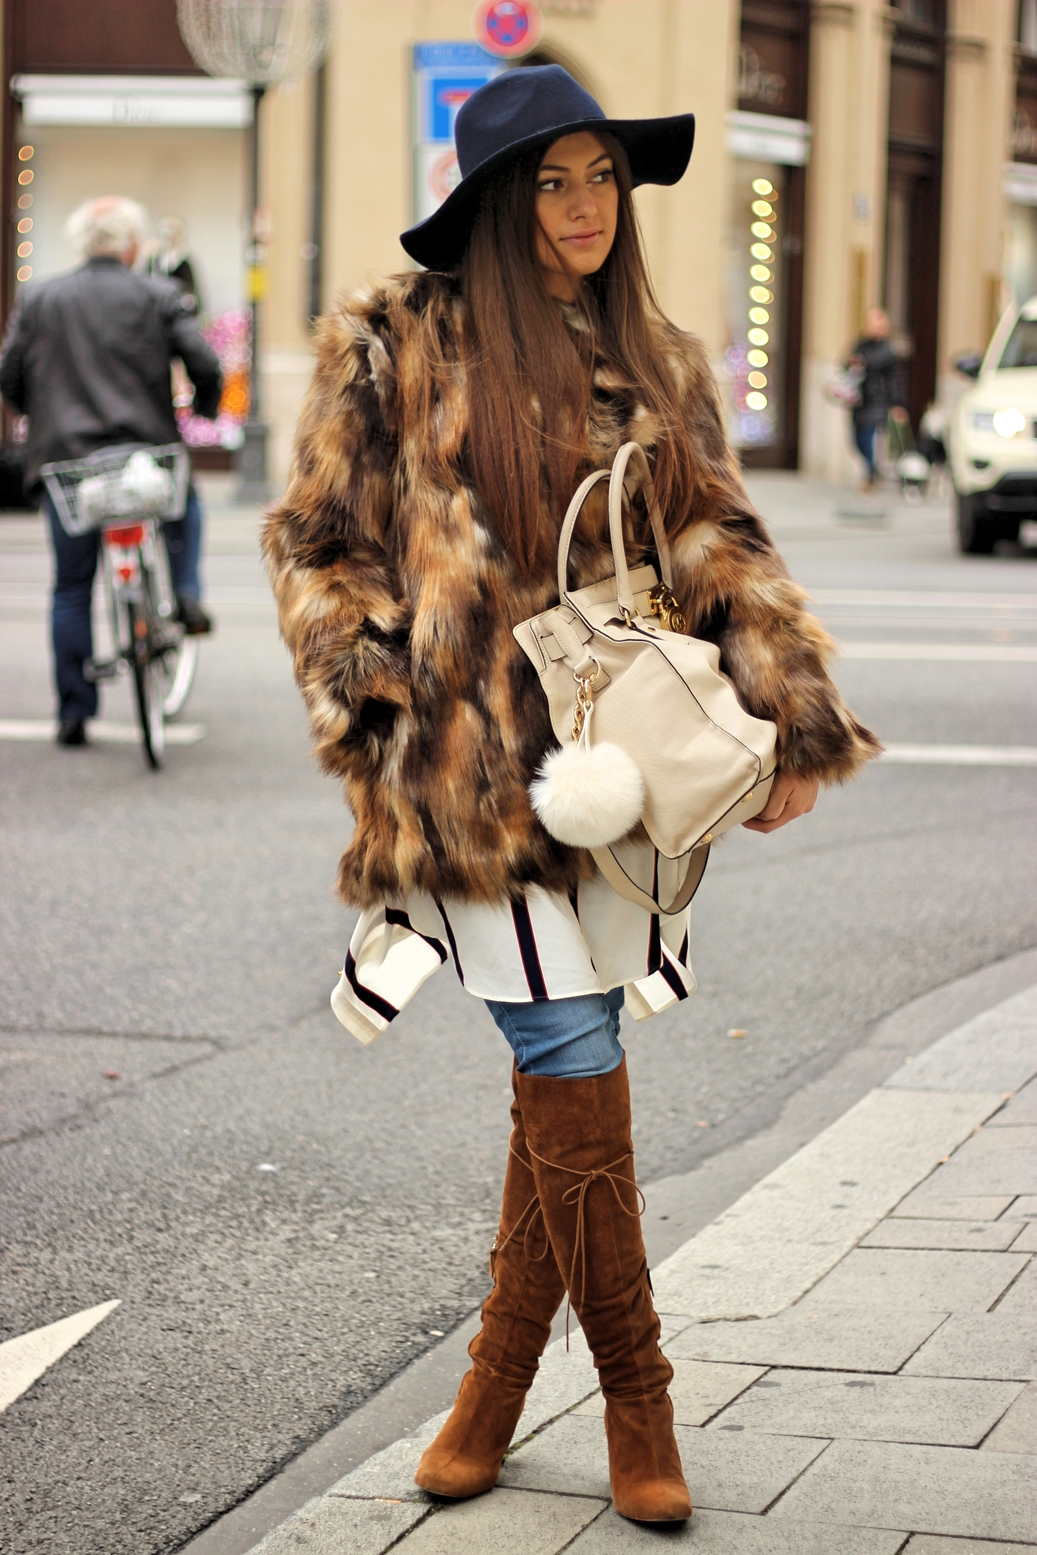 zara-outfit-street-style-blog-fashion-germany